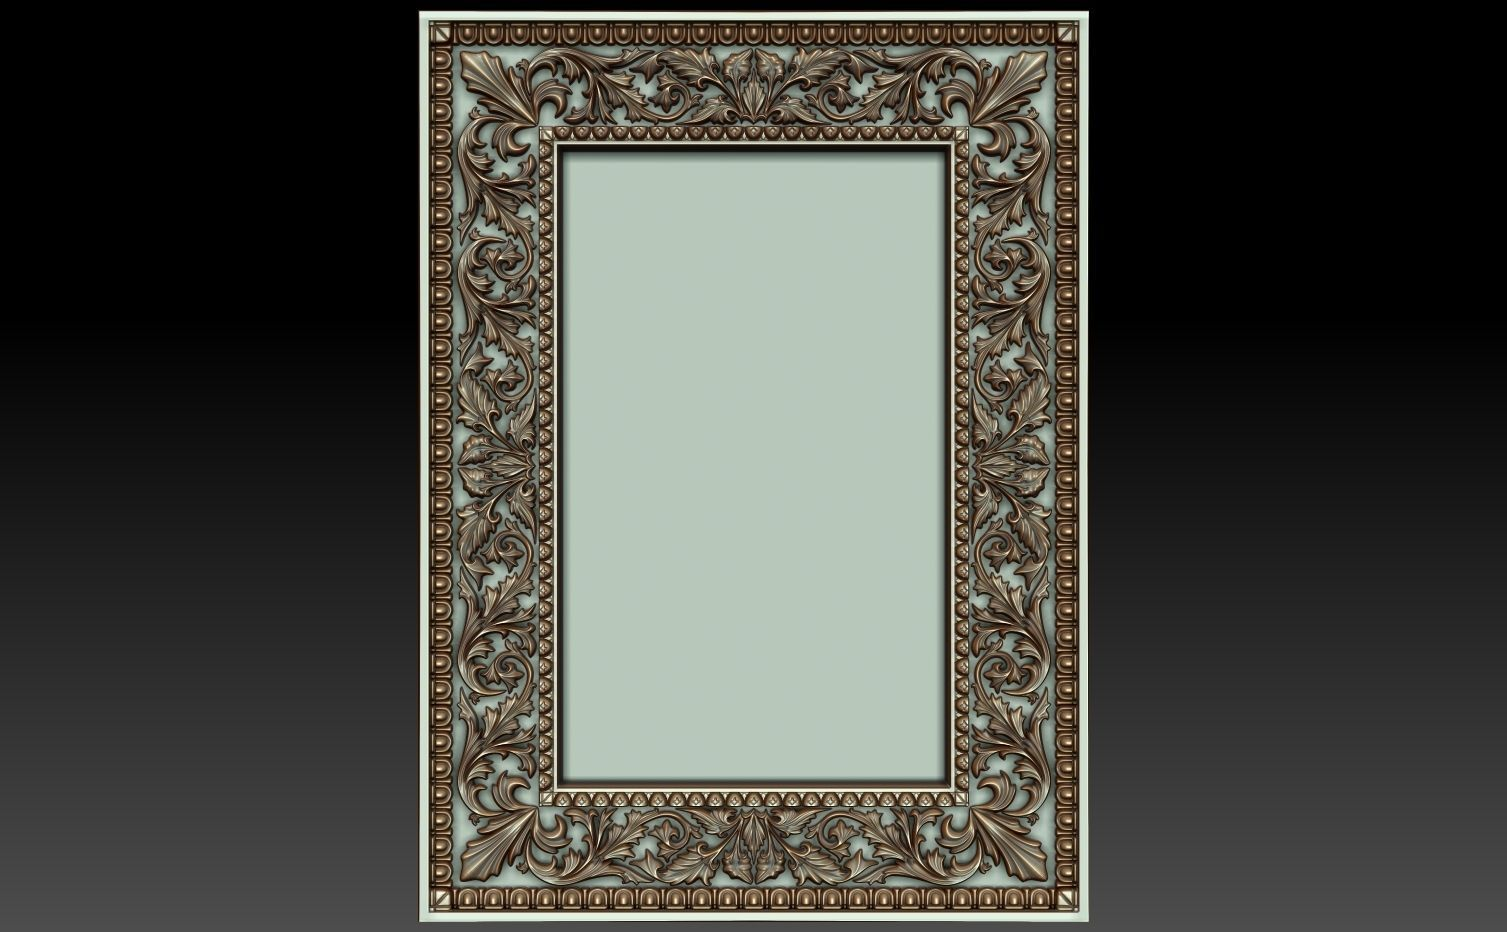 Decorative frame 3 3D | CGTrader